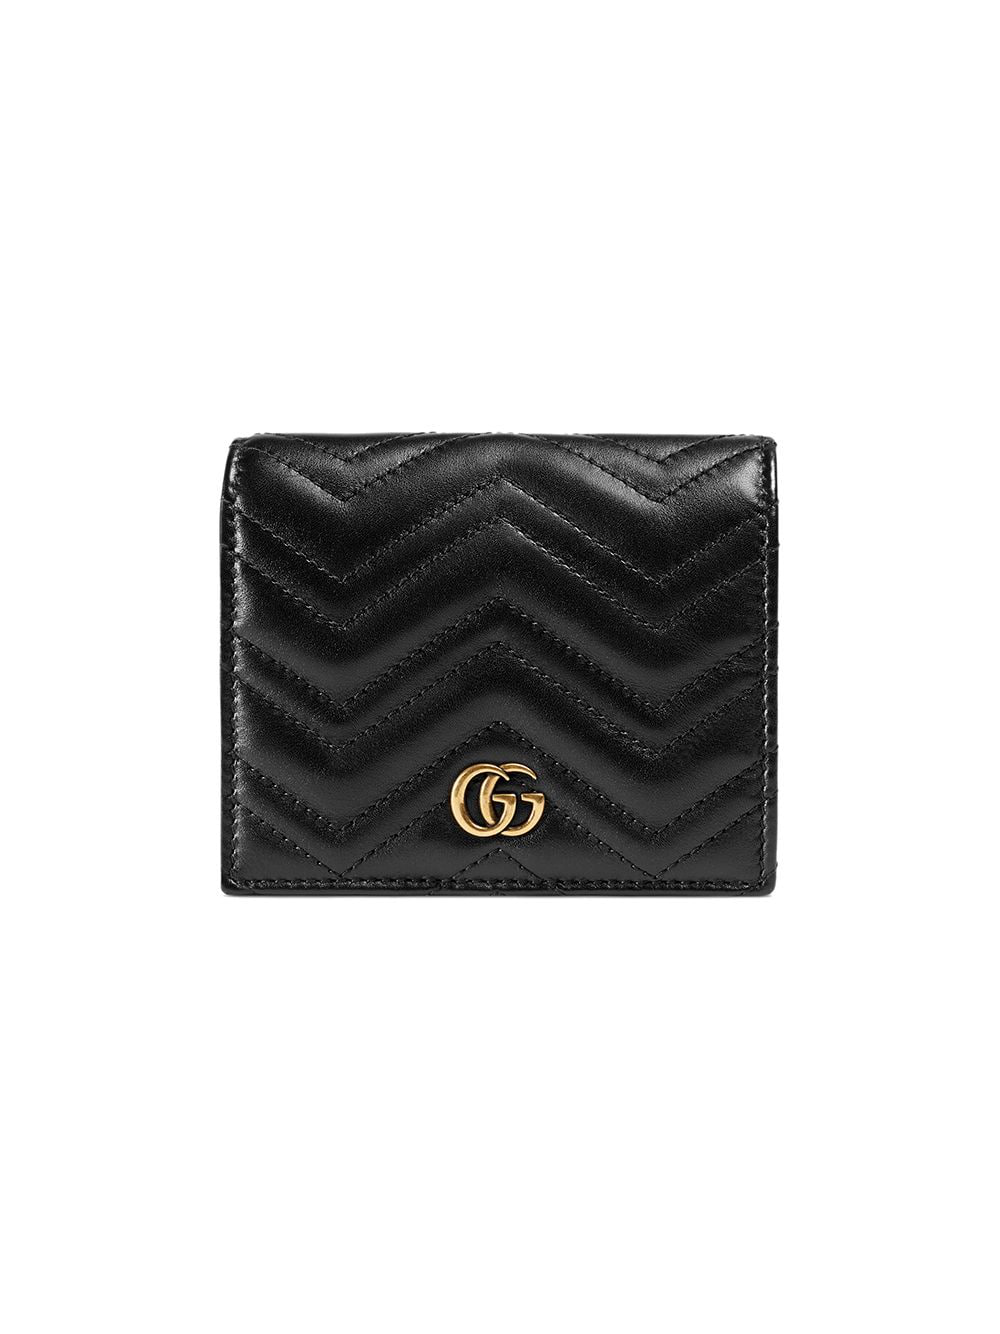 6610b336f1ac6e Gucci Gg Marmont Small Quilted Leather Wallet In Black | ModeSens